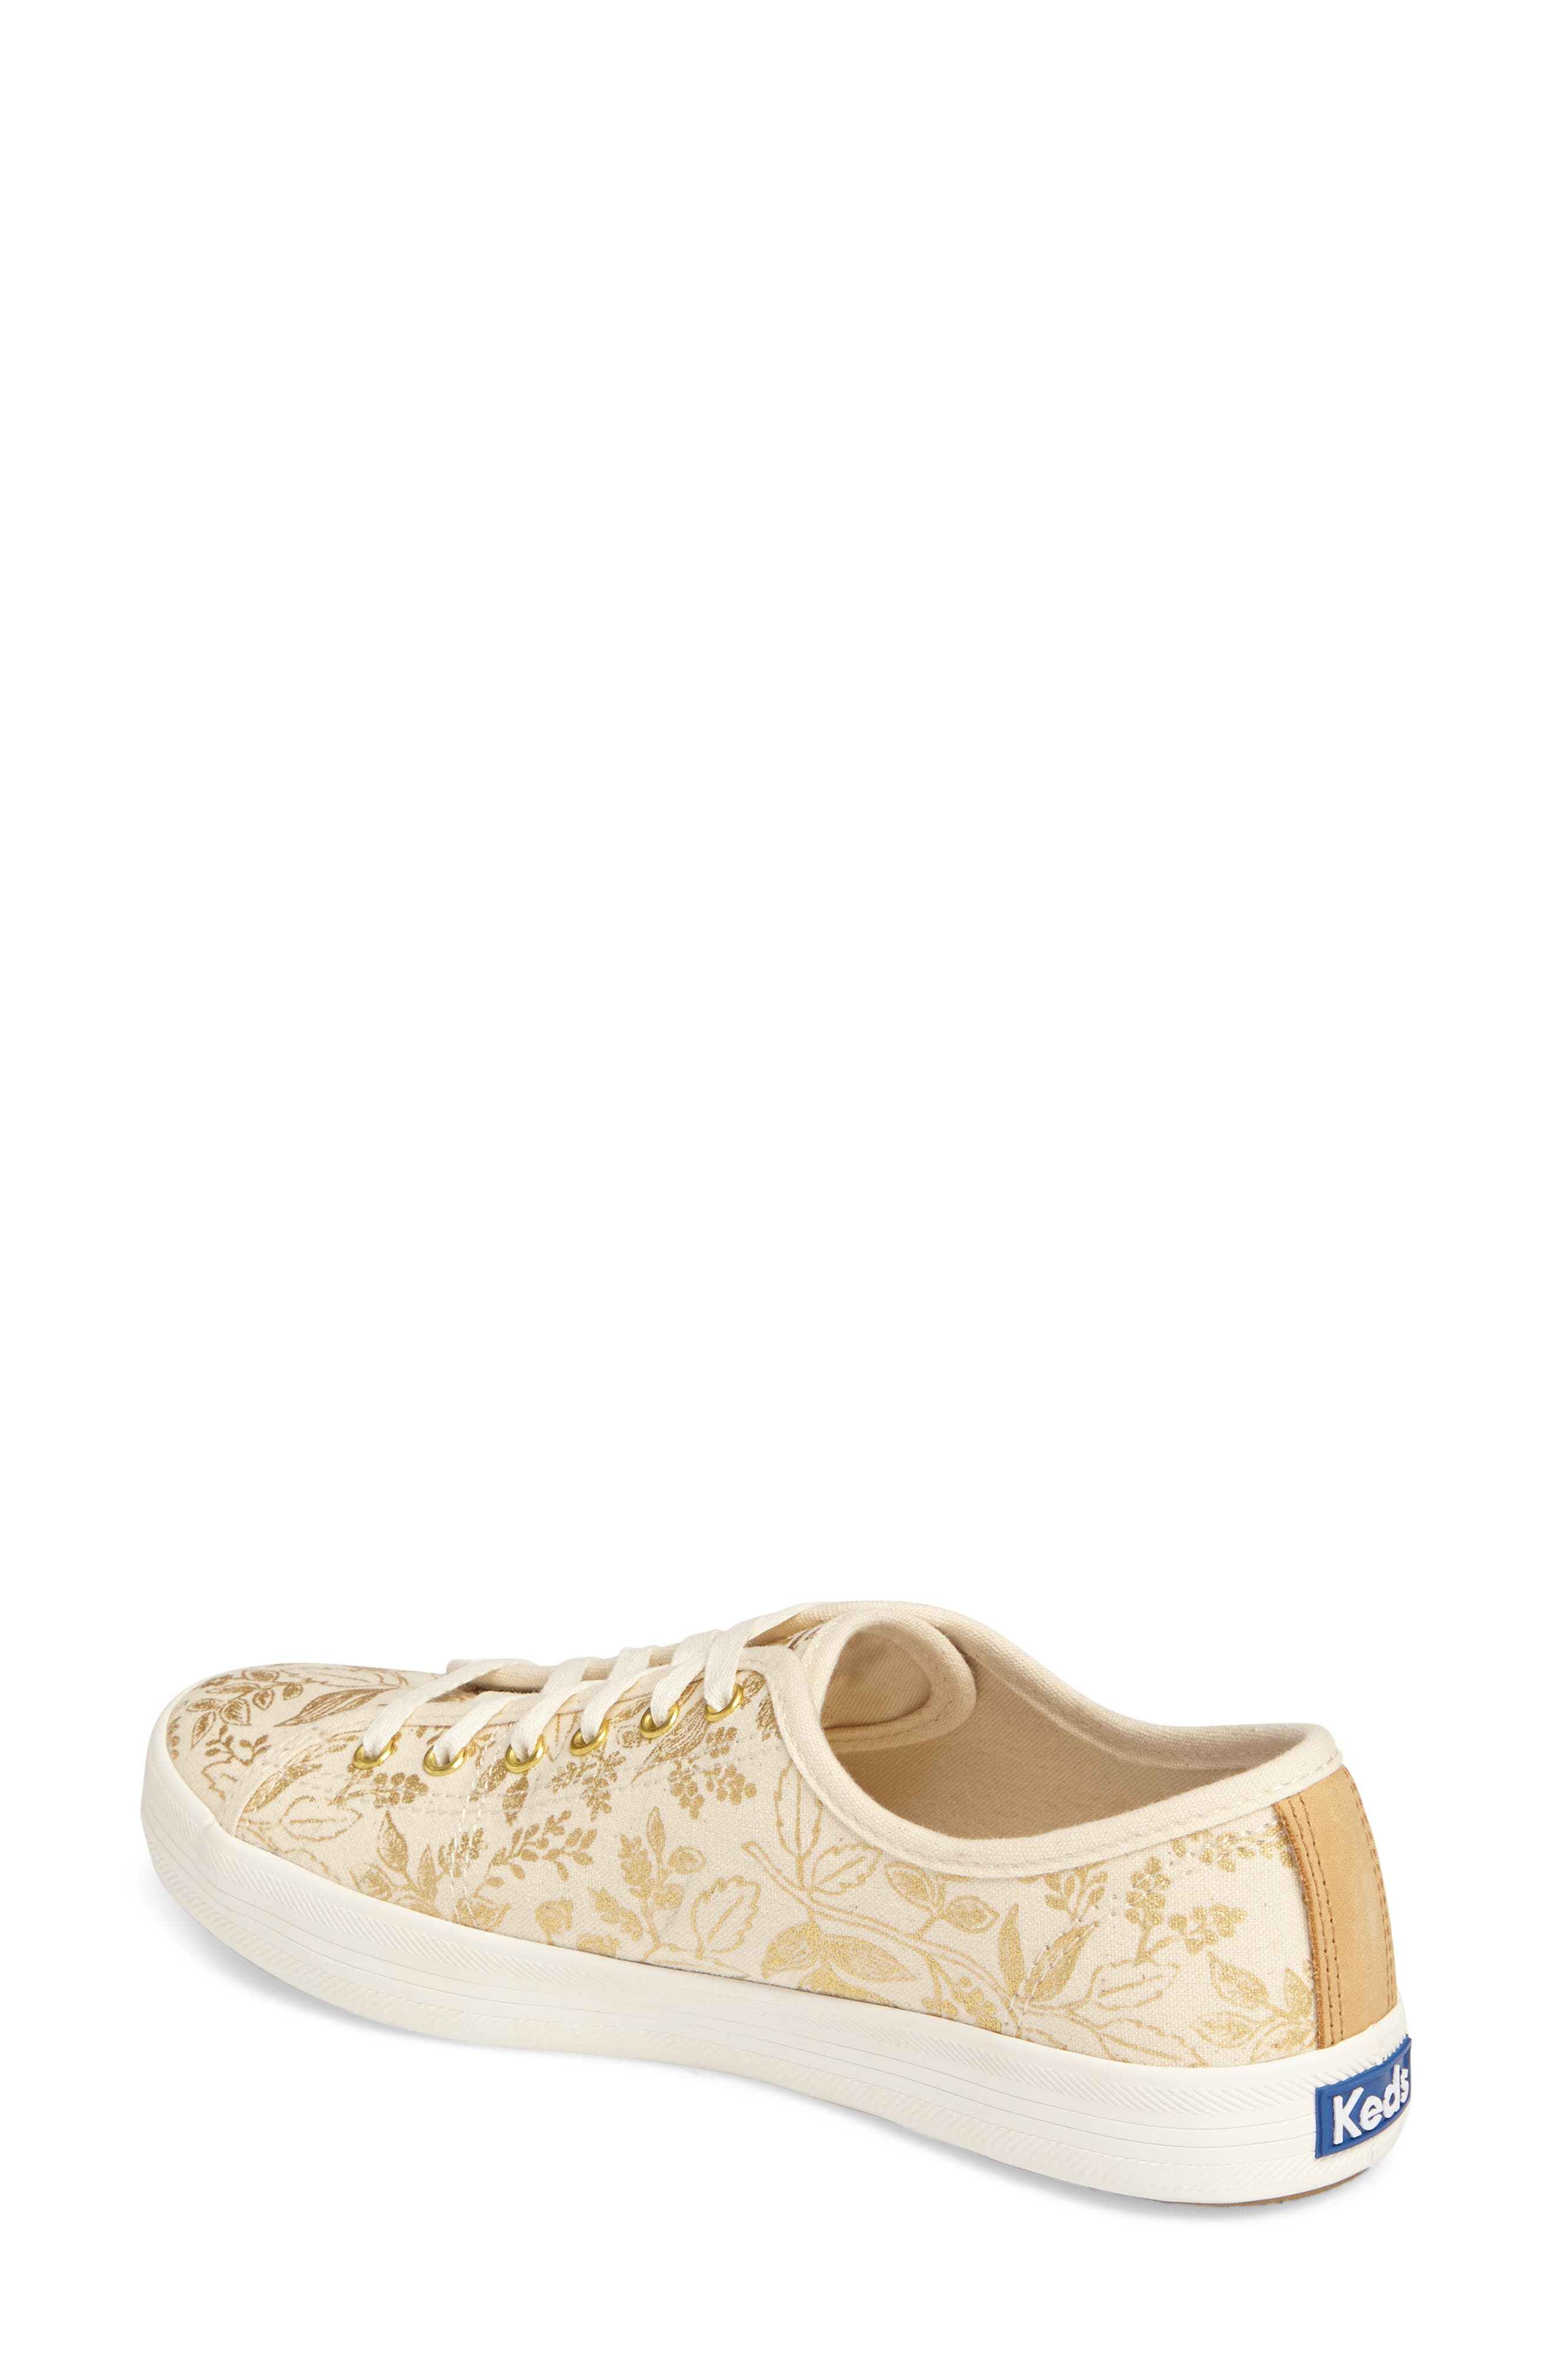 x Rifle Paper Co. Queen Anne Sneaker,                             Alternate thumbnail 2, color,                             Natural